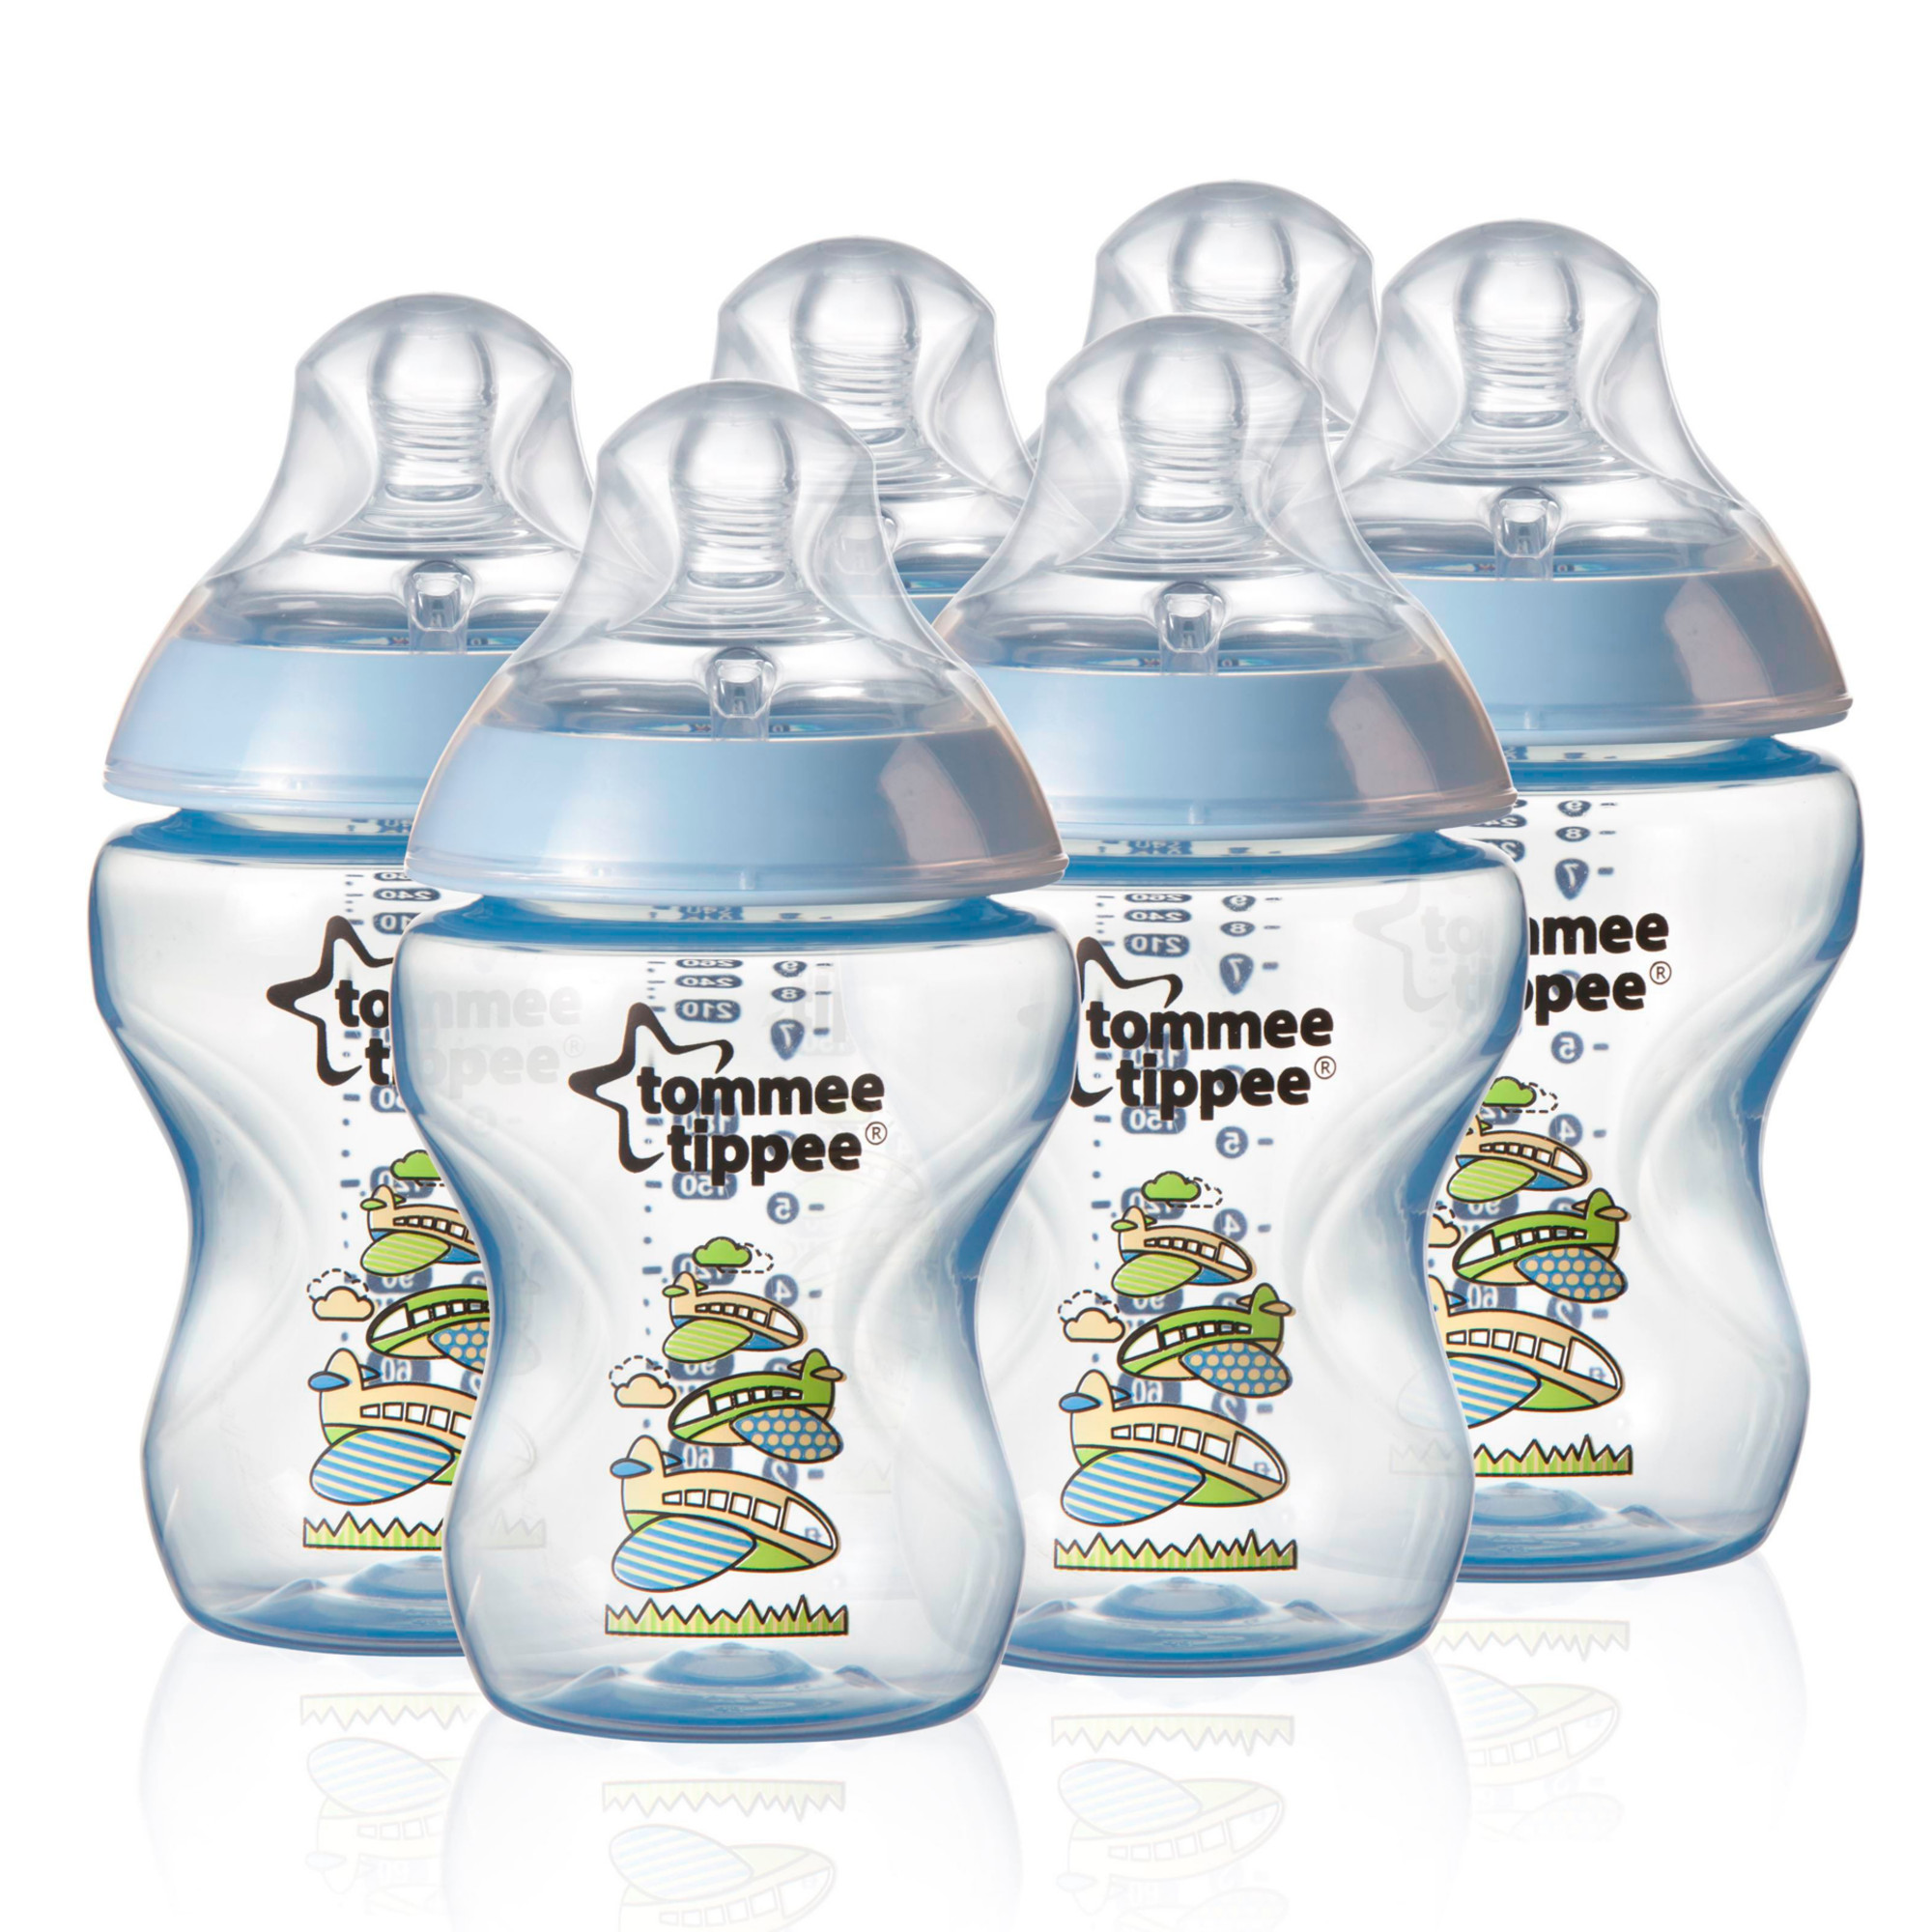 tommee tippee nappy wrapper refill